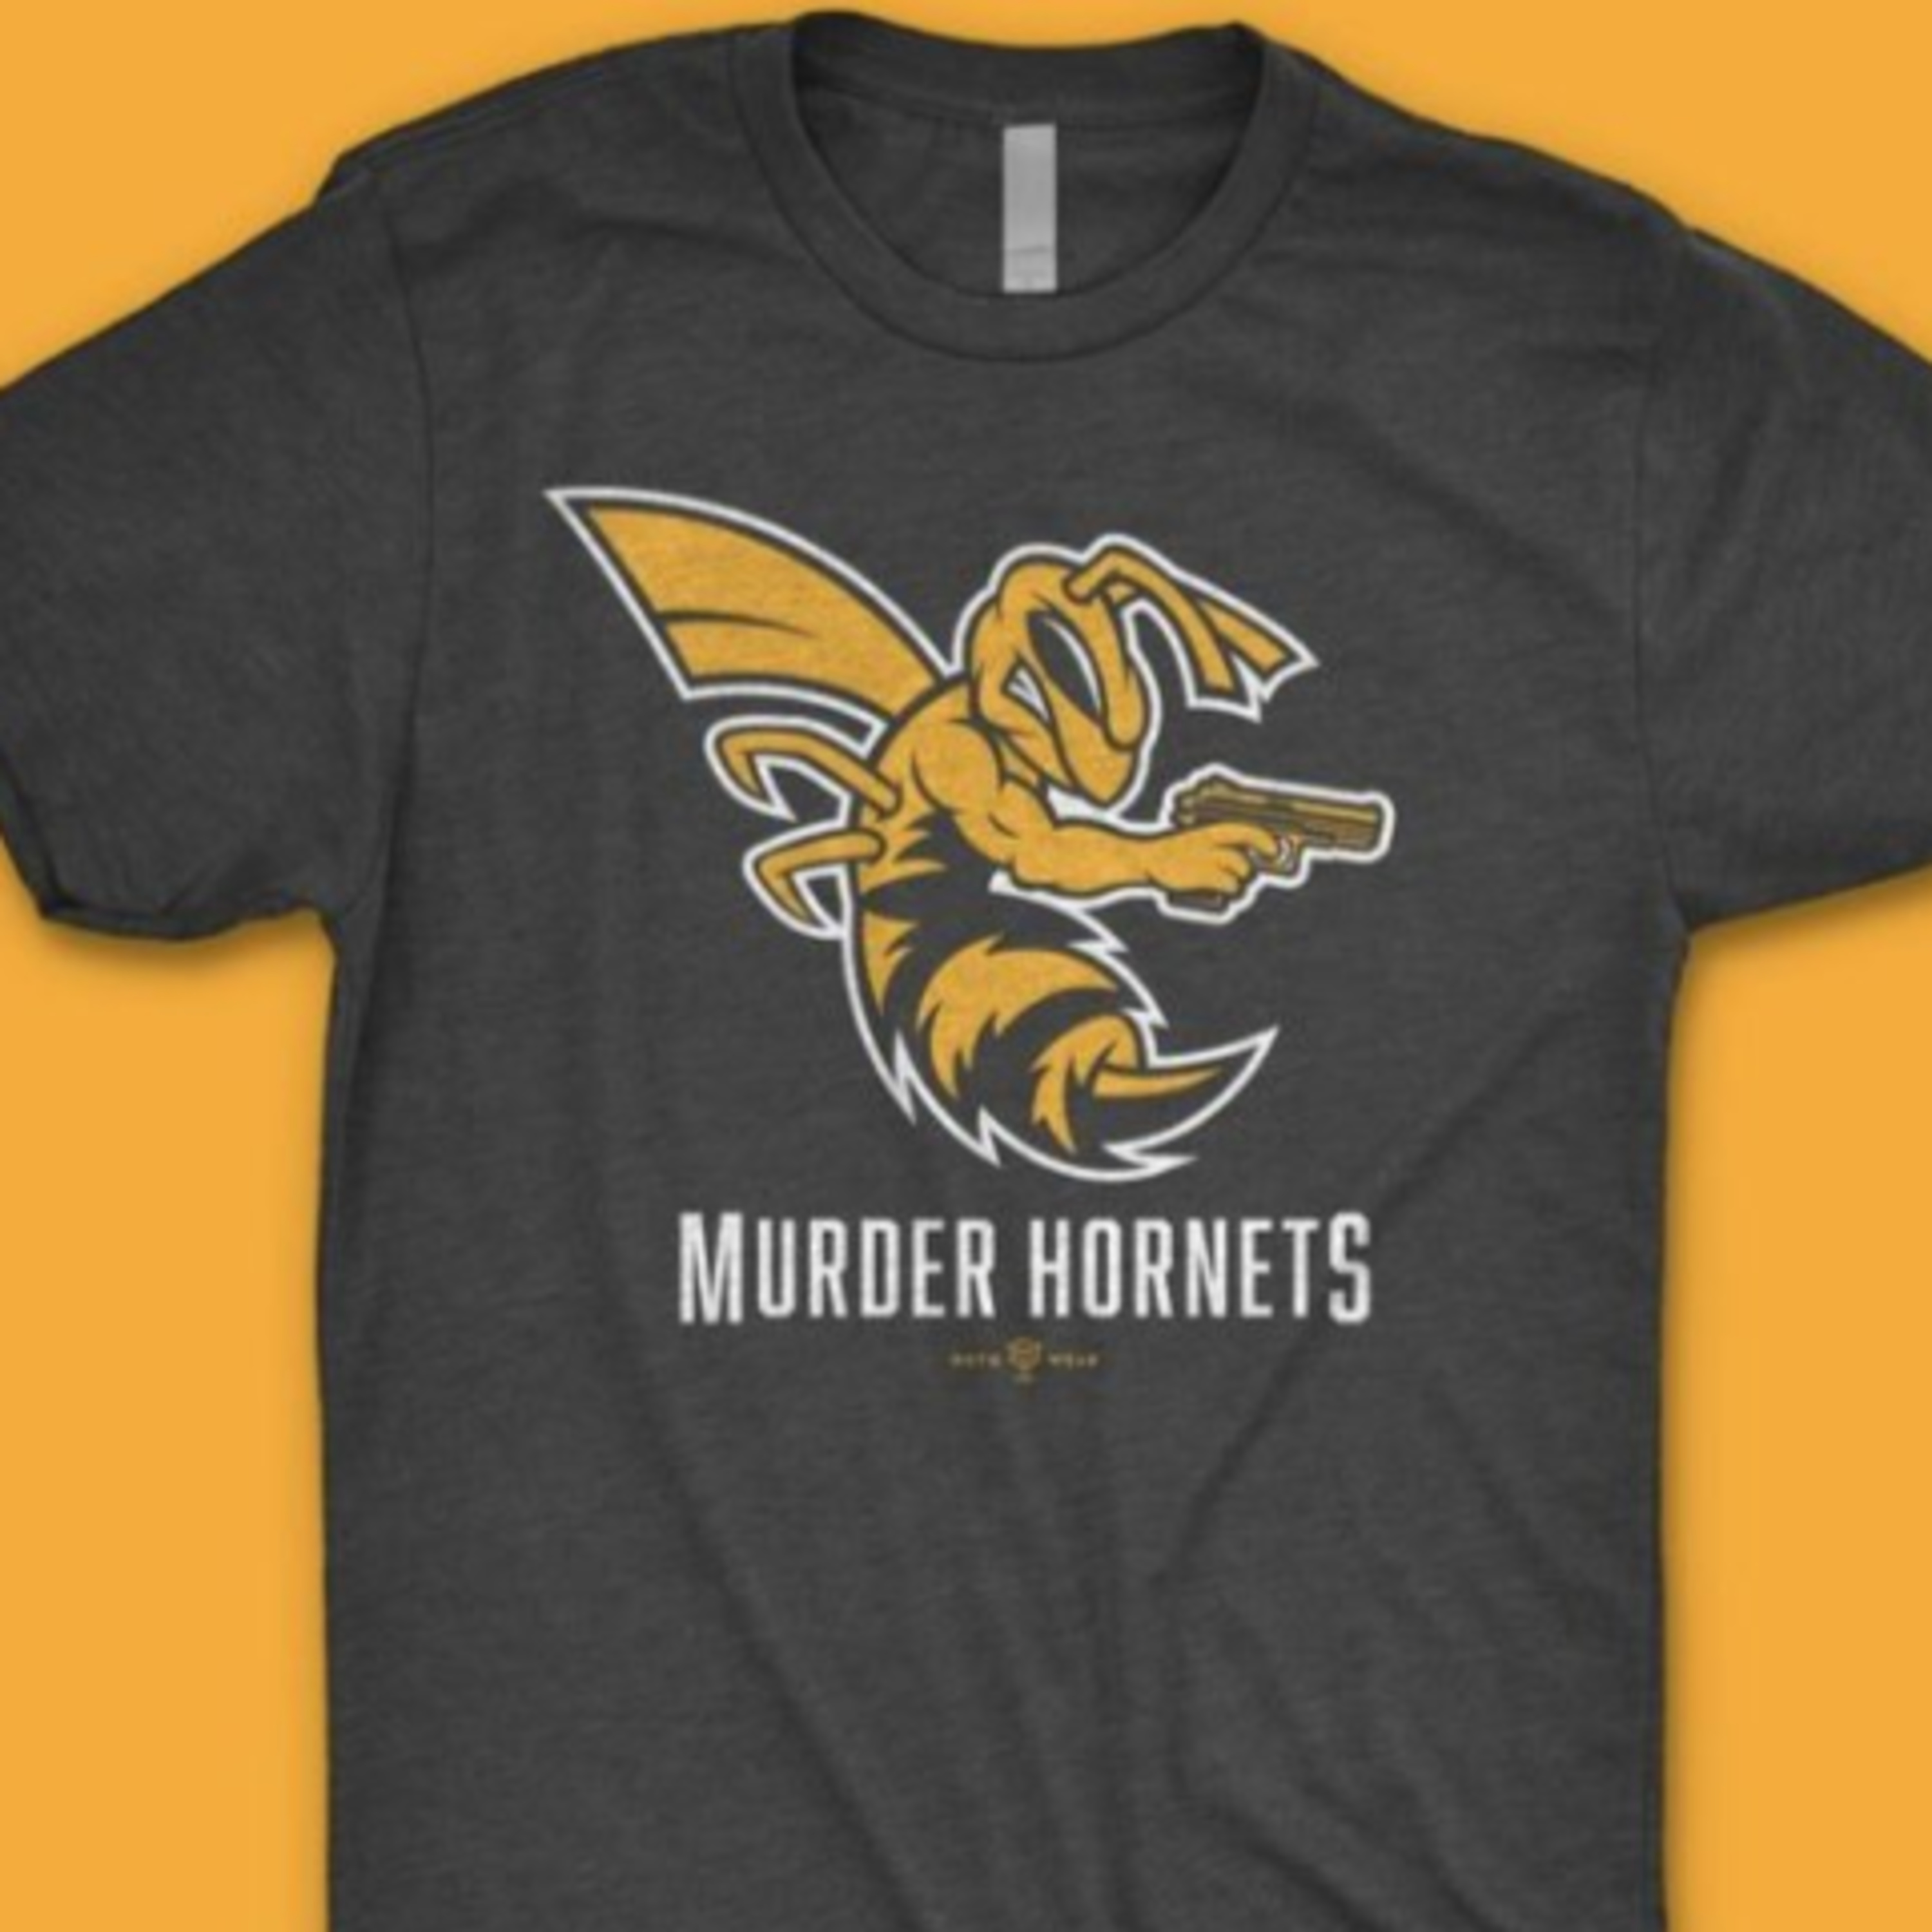 #93 | Murder Hornets | Positivity in Chaos | Comprehension | Conspiracy | New Podcast | TMMAConspiracy | Covid-19 | Media | Television | Pandemic | New Norm | Better World | Veil is Lifting